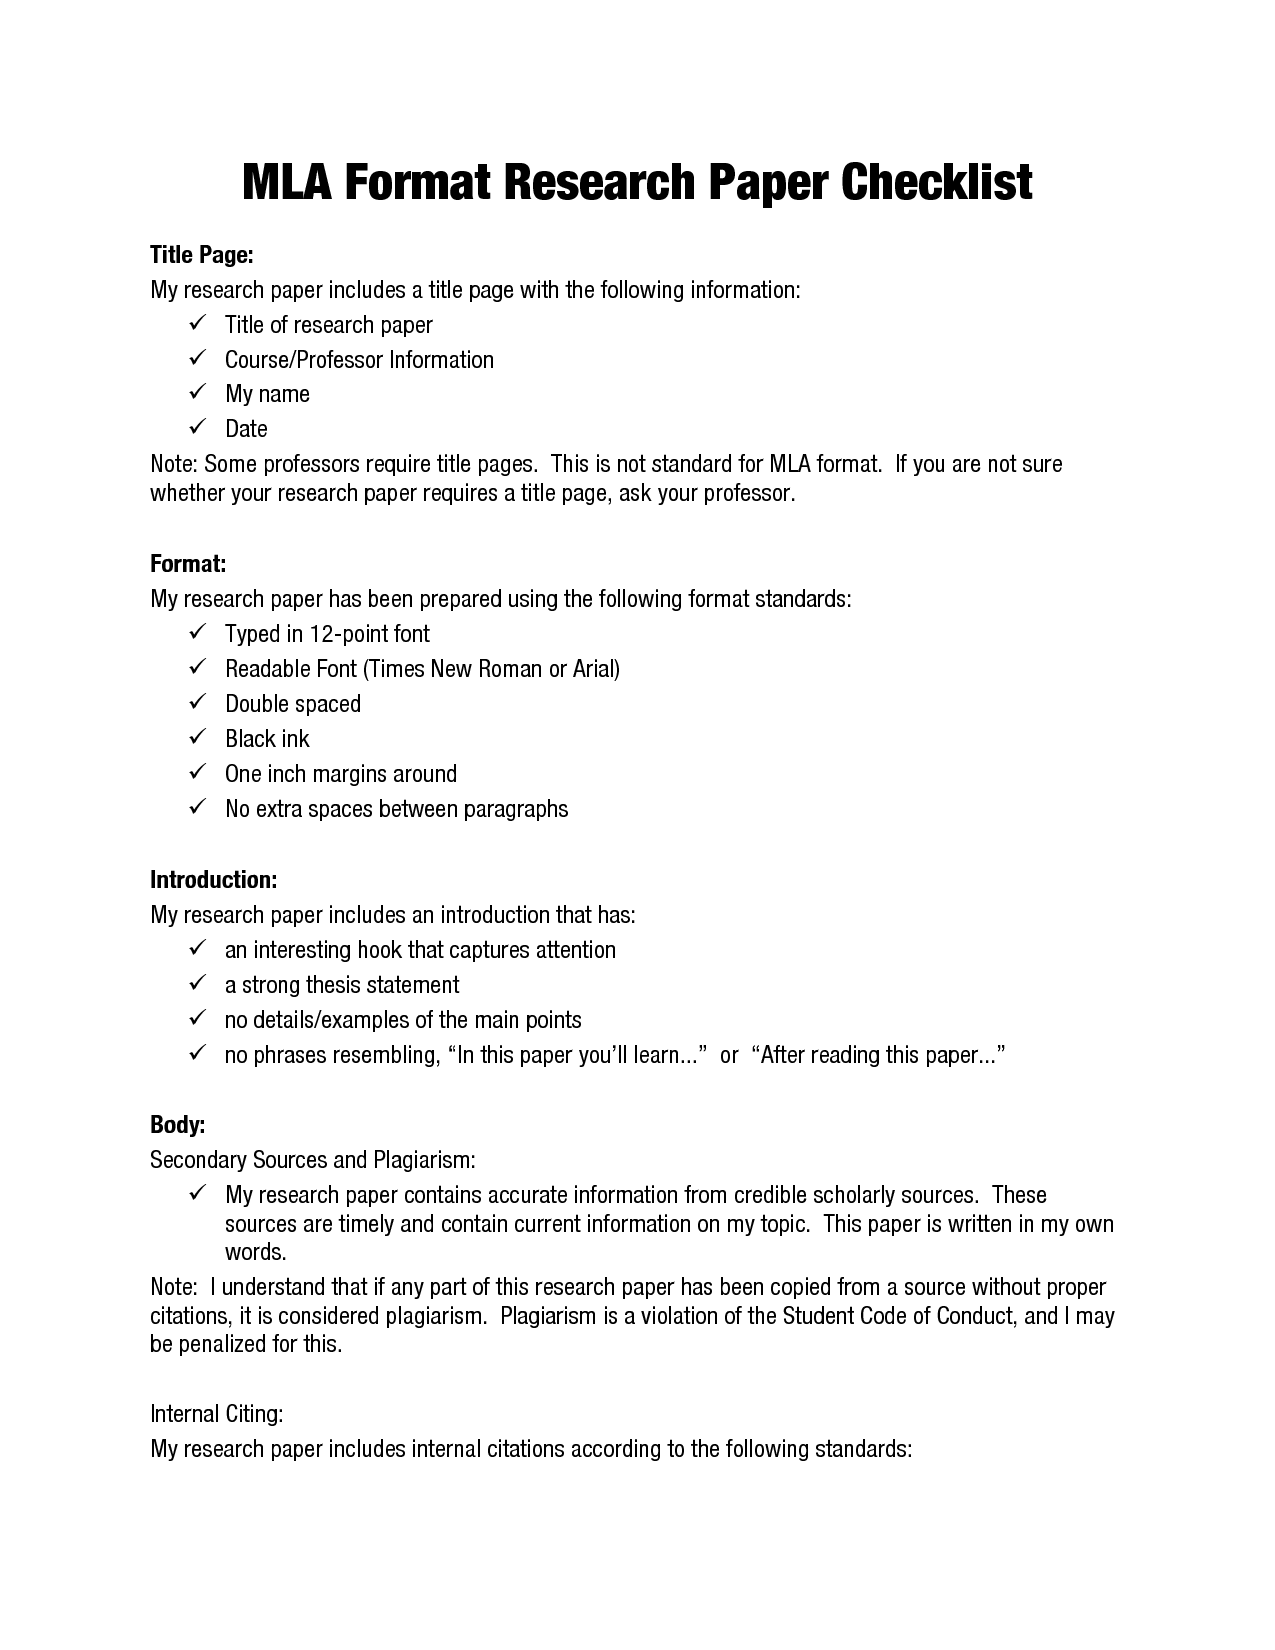 Personal Legend Essay Mla Format Research Papers  Mla Format Research Paper Checklist The Great Gatsby Book Report Essay also Kite Runner Essay Mla Format Research Papers  Mla Format Research Paper Checklist  Thesis For A Persuasive Essay